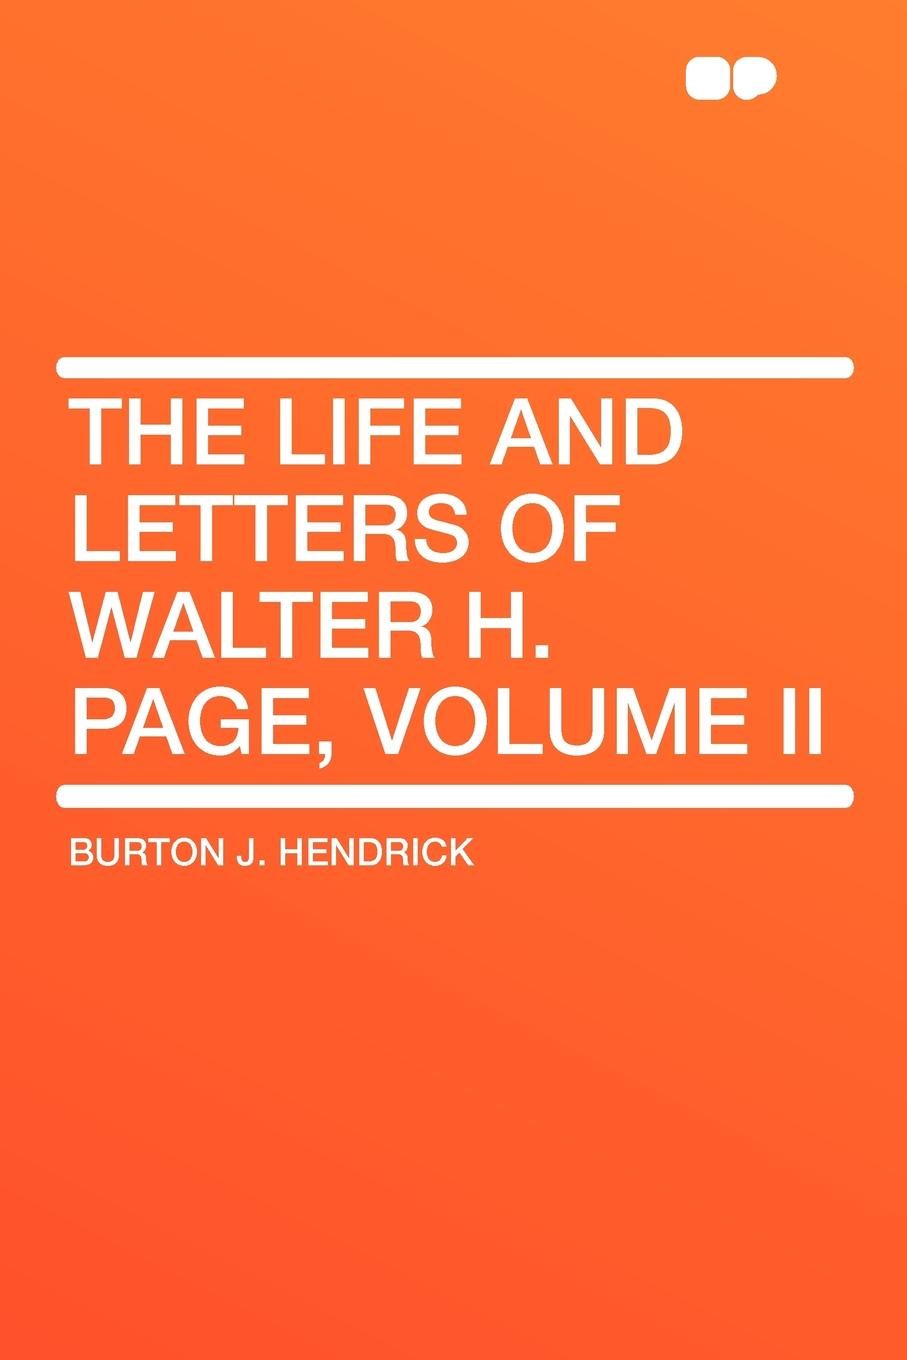 Burton J. Hendrick The Life and Letters of Walter H. Page, Volume II barr amelia e all the days of my life an autobiography page 5 page 10 page 8